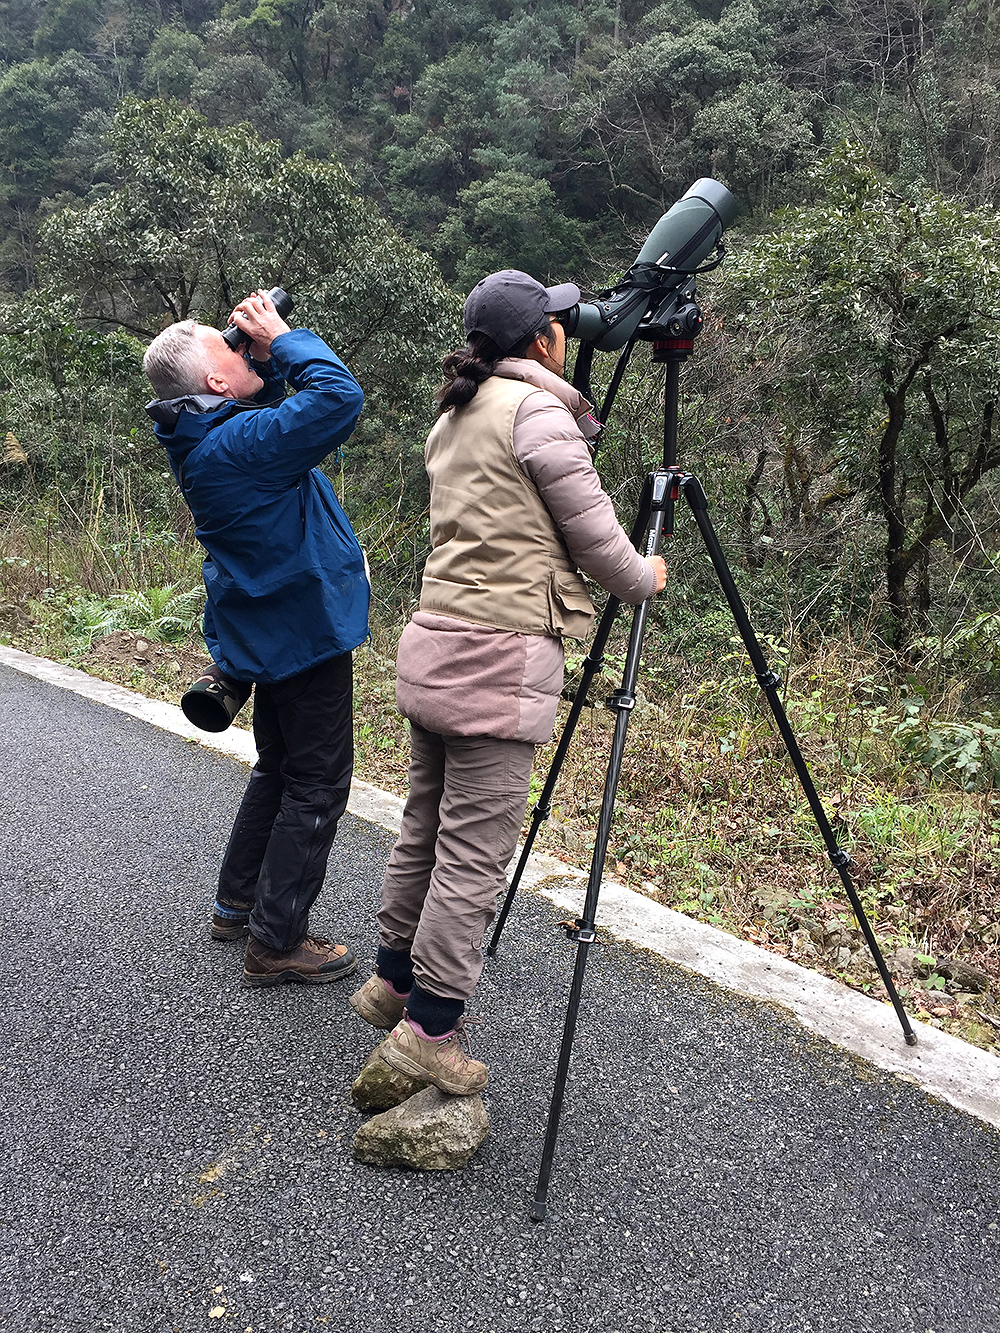 Brian Ivon Jones (L) and Elaine Du viewing Grandala for the first time, Dulong Gorge, 19 Feb. 2016.